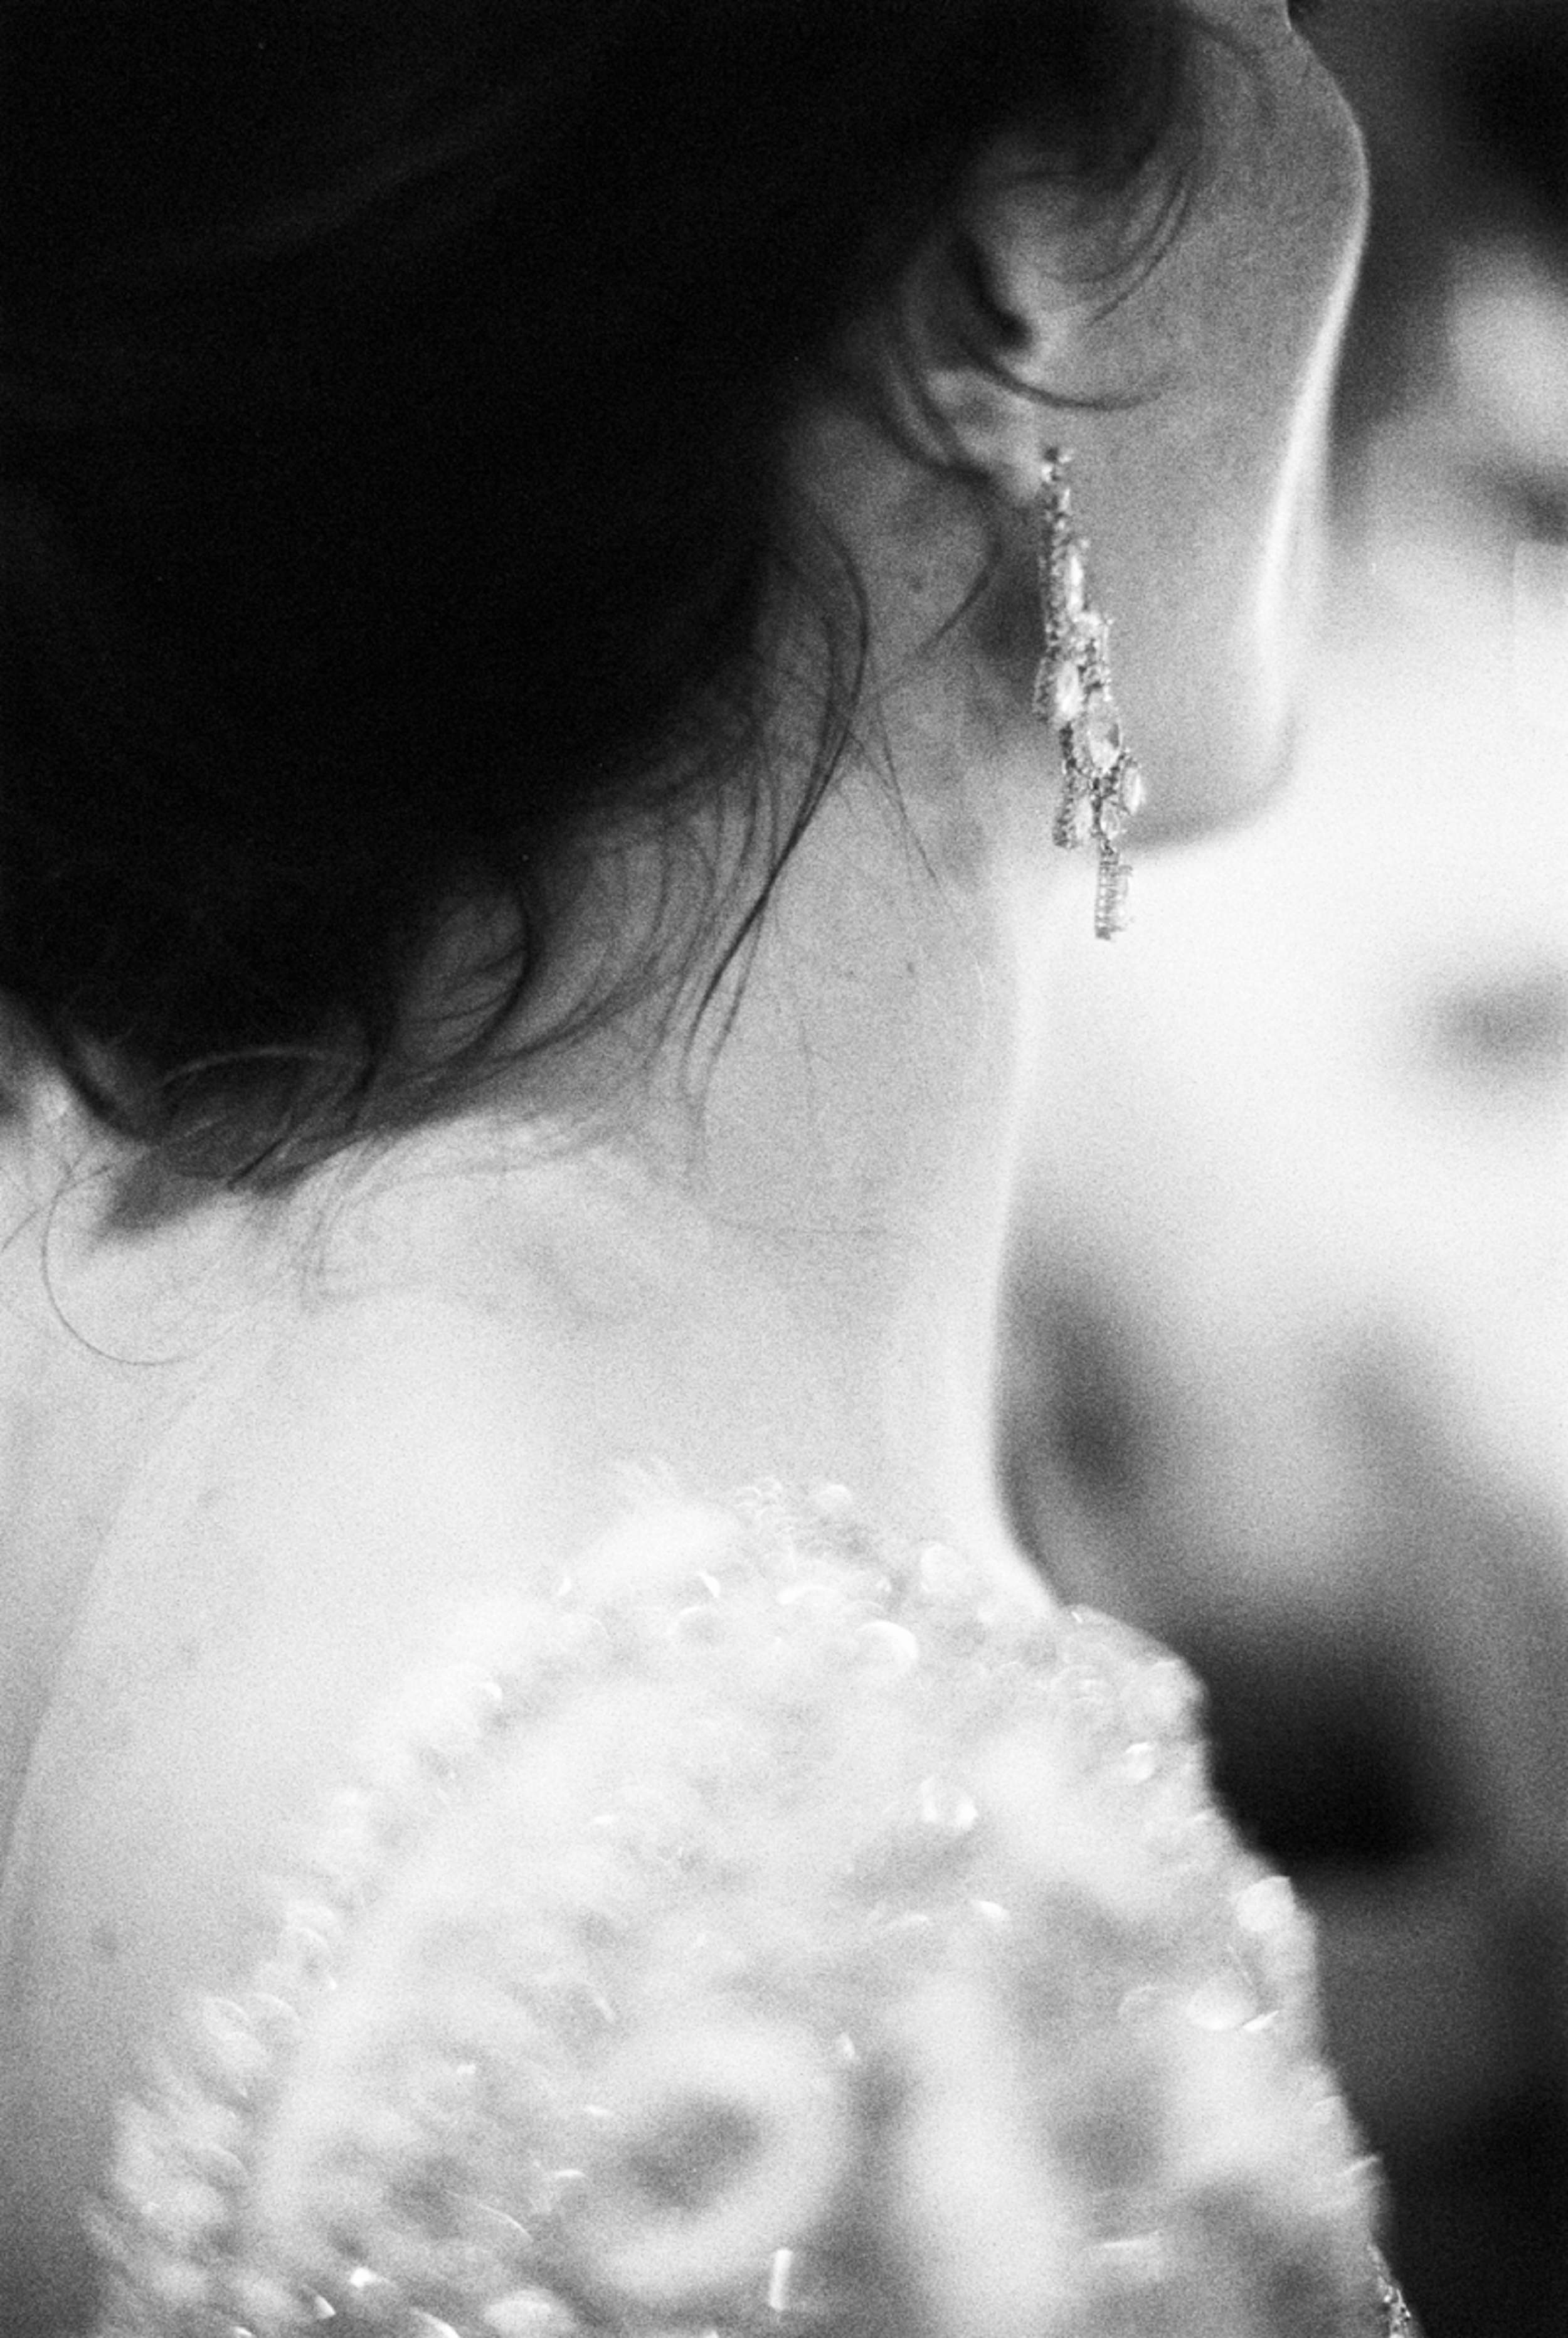 Braut Ohrring earring evening glamour